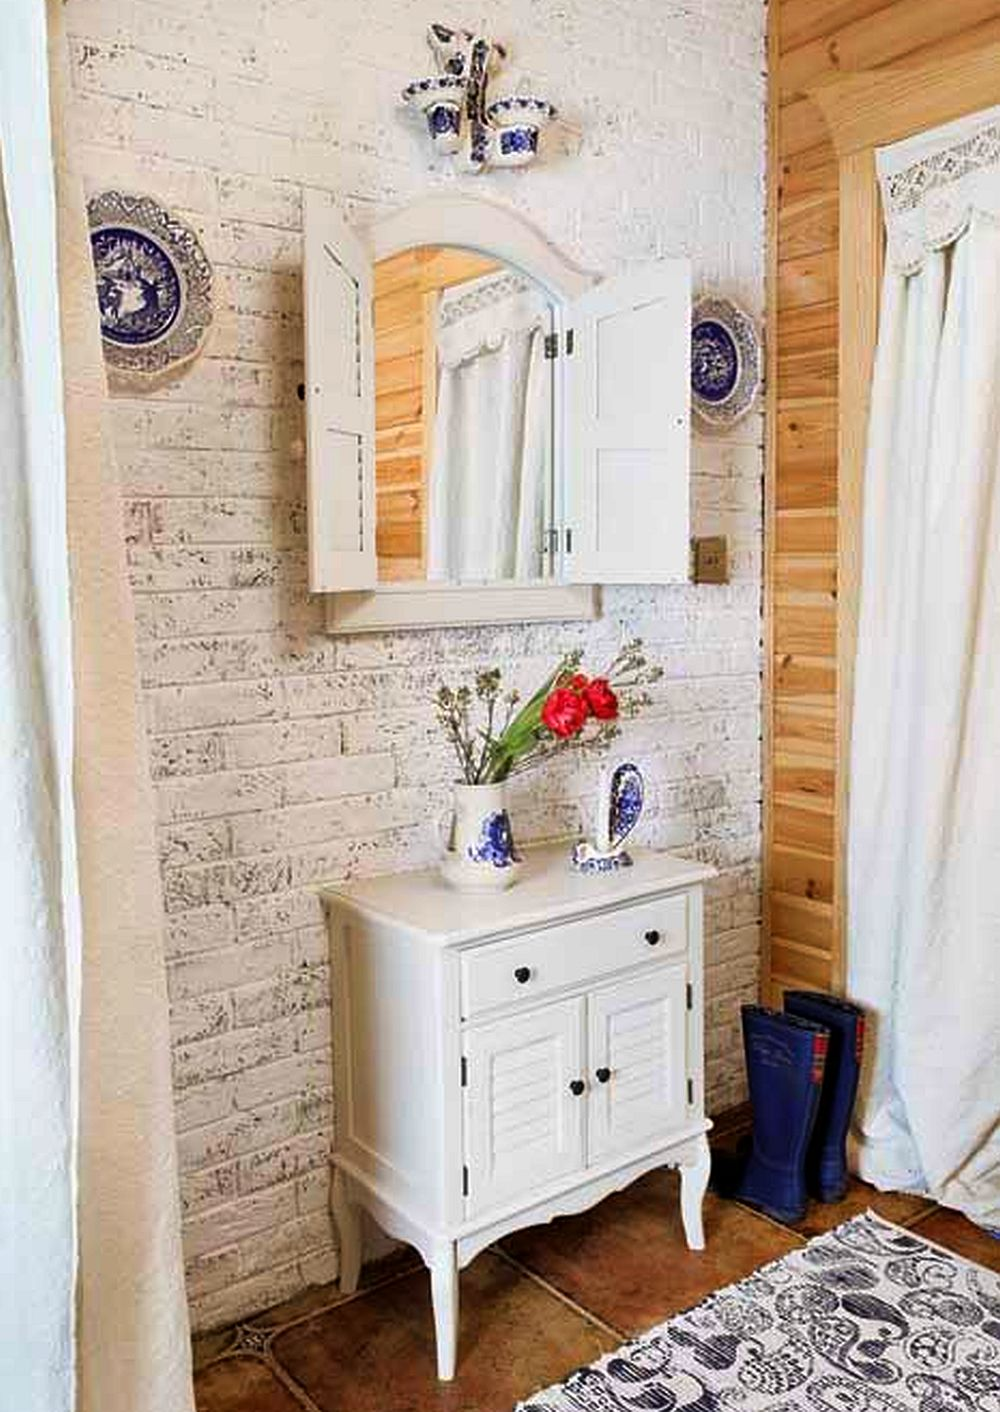 adelaparvu.com about rustic house in white and blue Photo Aneta Tryczynska(9)